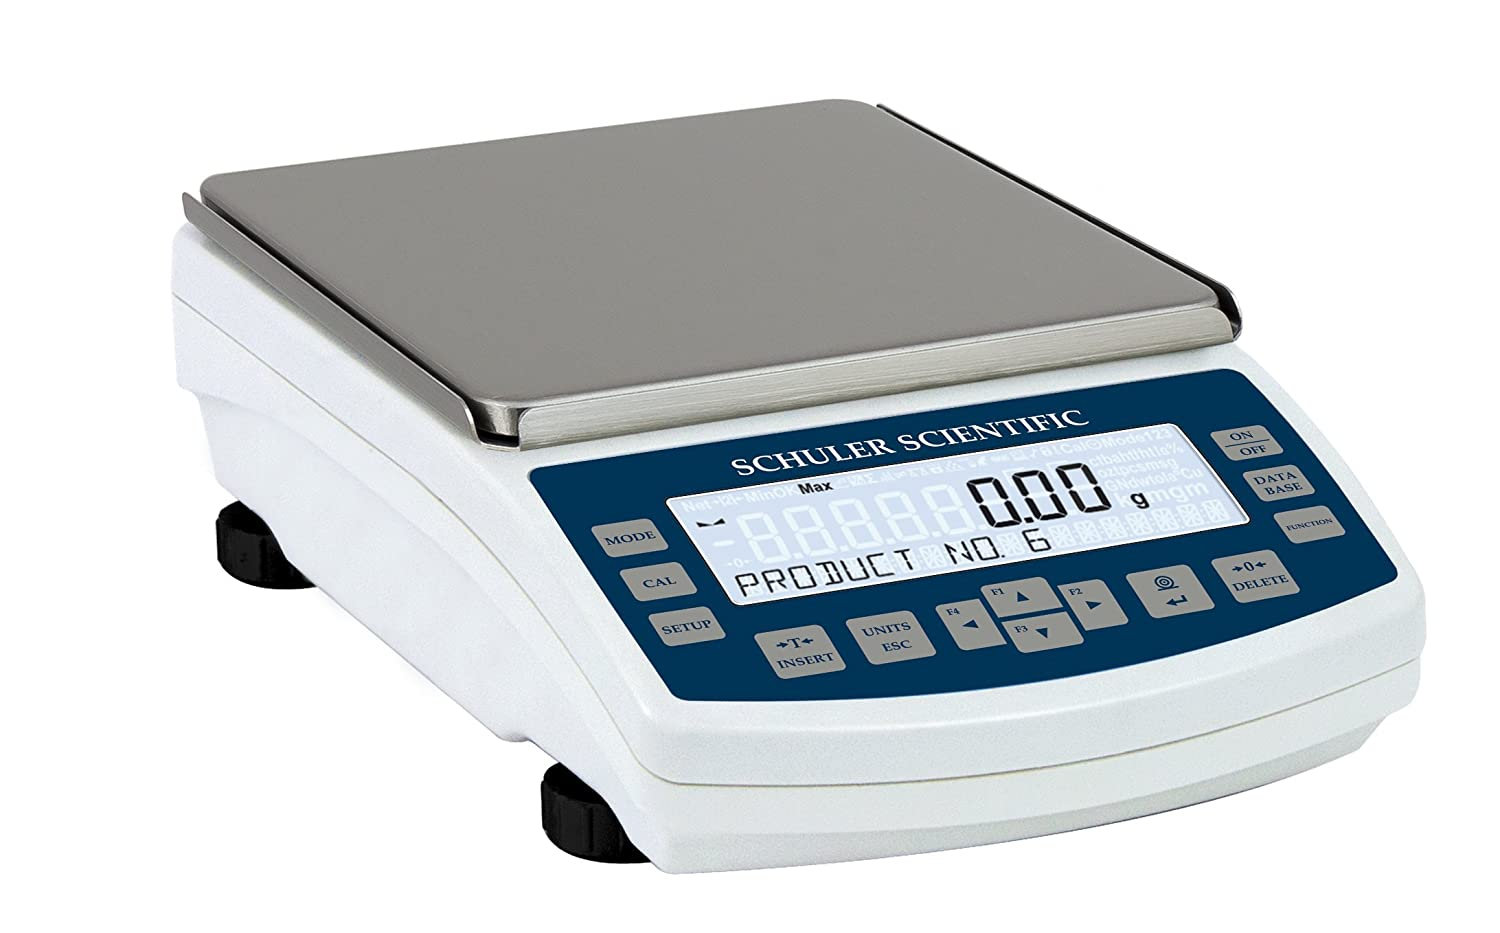 Image of Schuler Scientific SLB-5002 B Series Top Loading Balance with 5000g Capacity and 0.01g Readability Analytical Balances